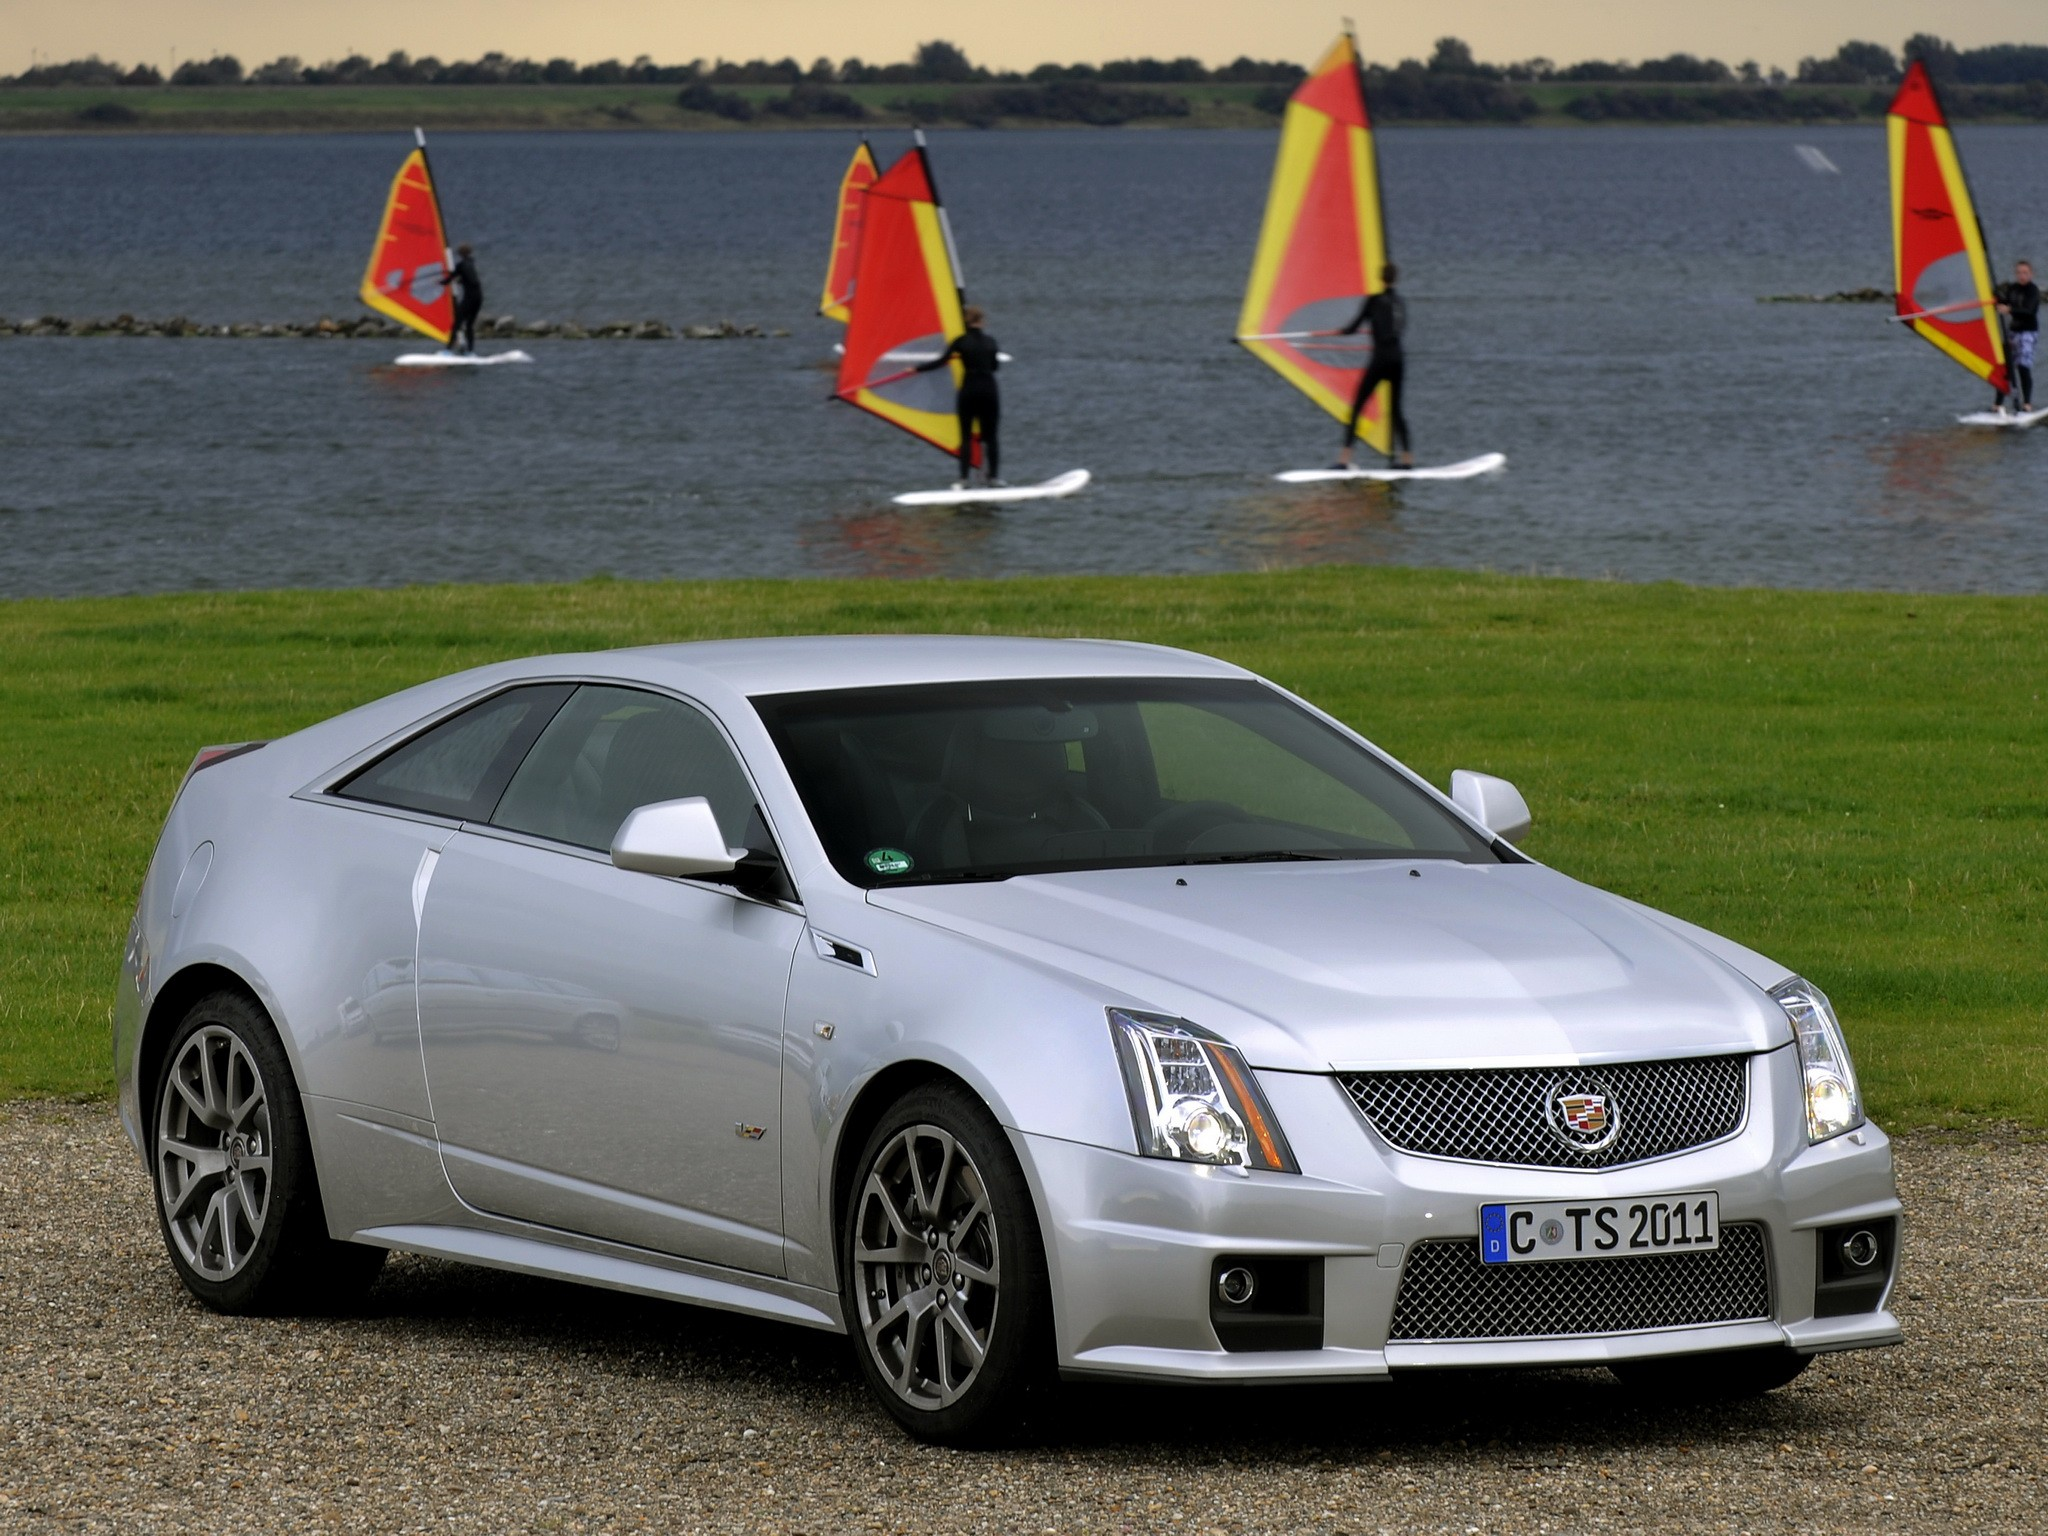 cts cadillac coupe autoevolution specs performance models series present